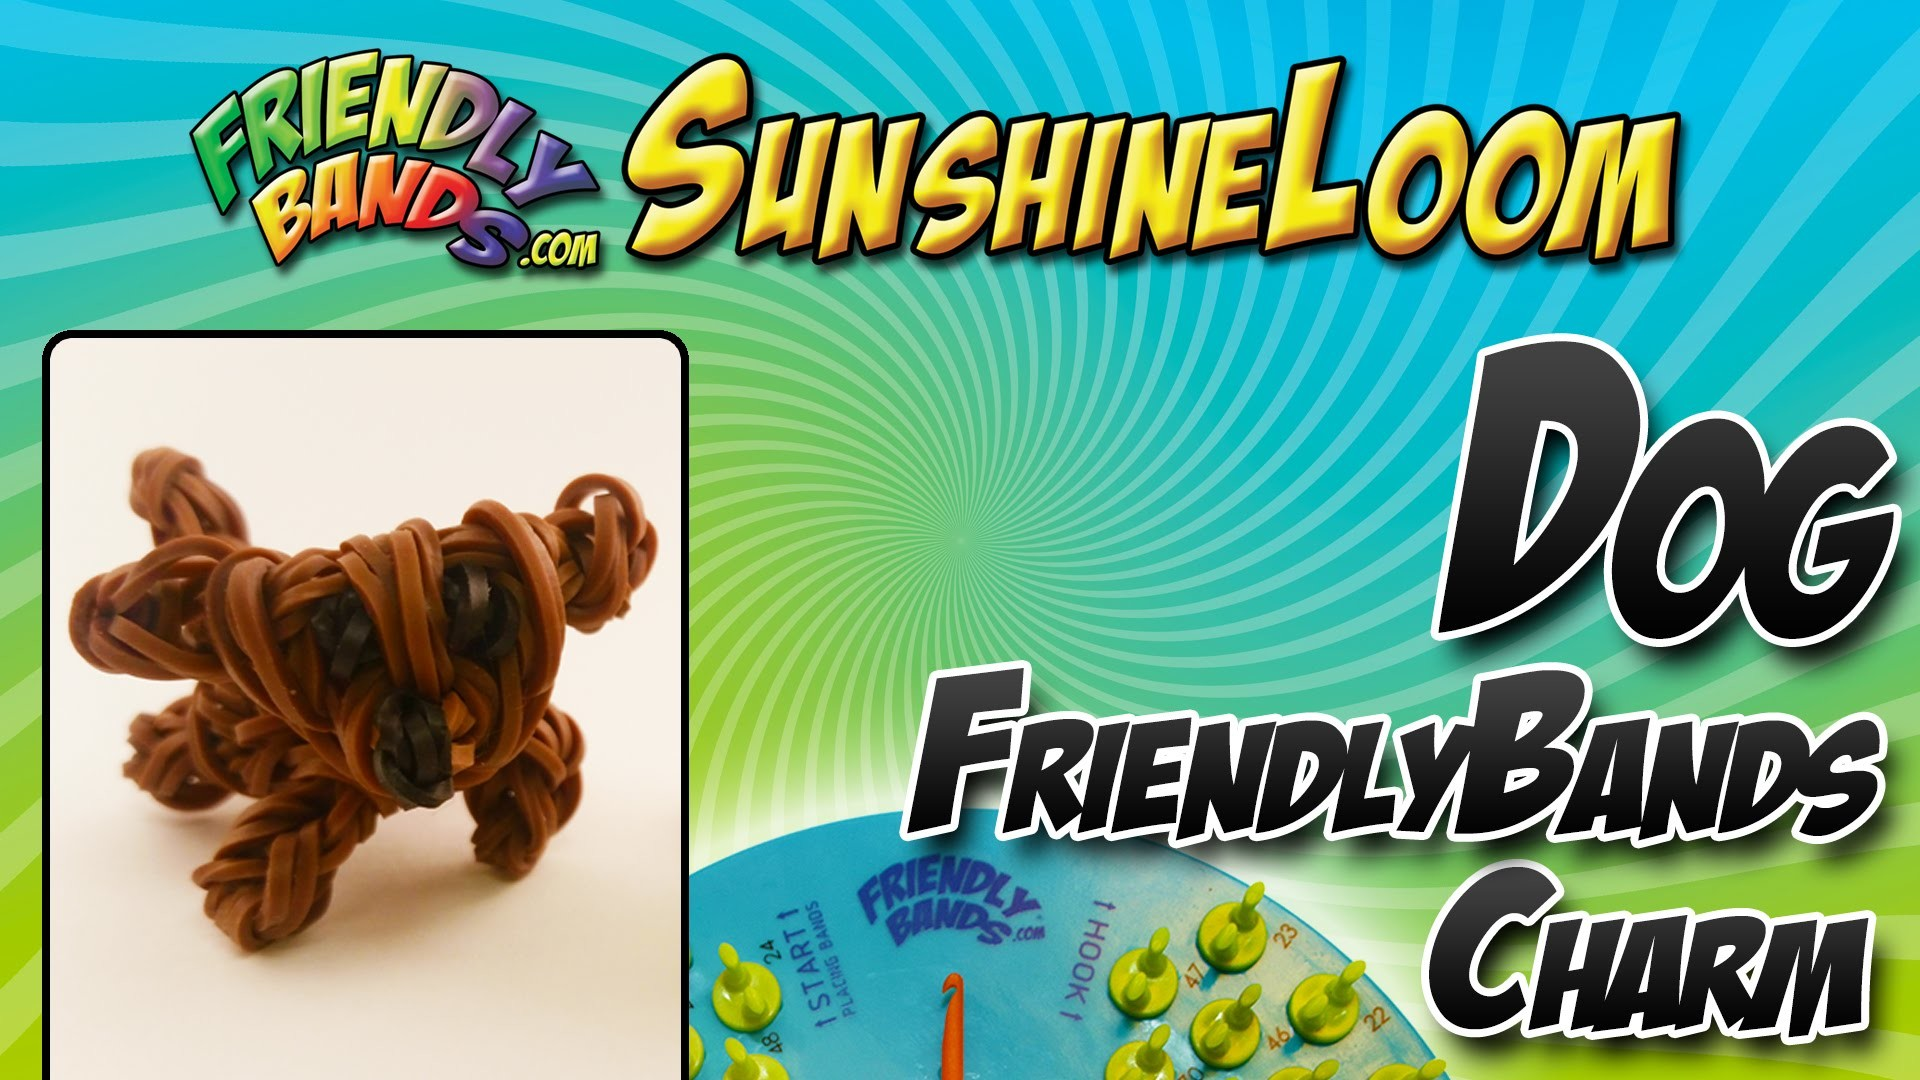 How to Make a FriendlyBand SunshineLoom - Dog Charm Video Tutorial